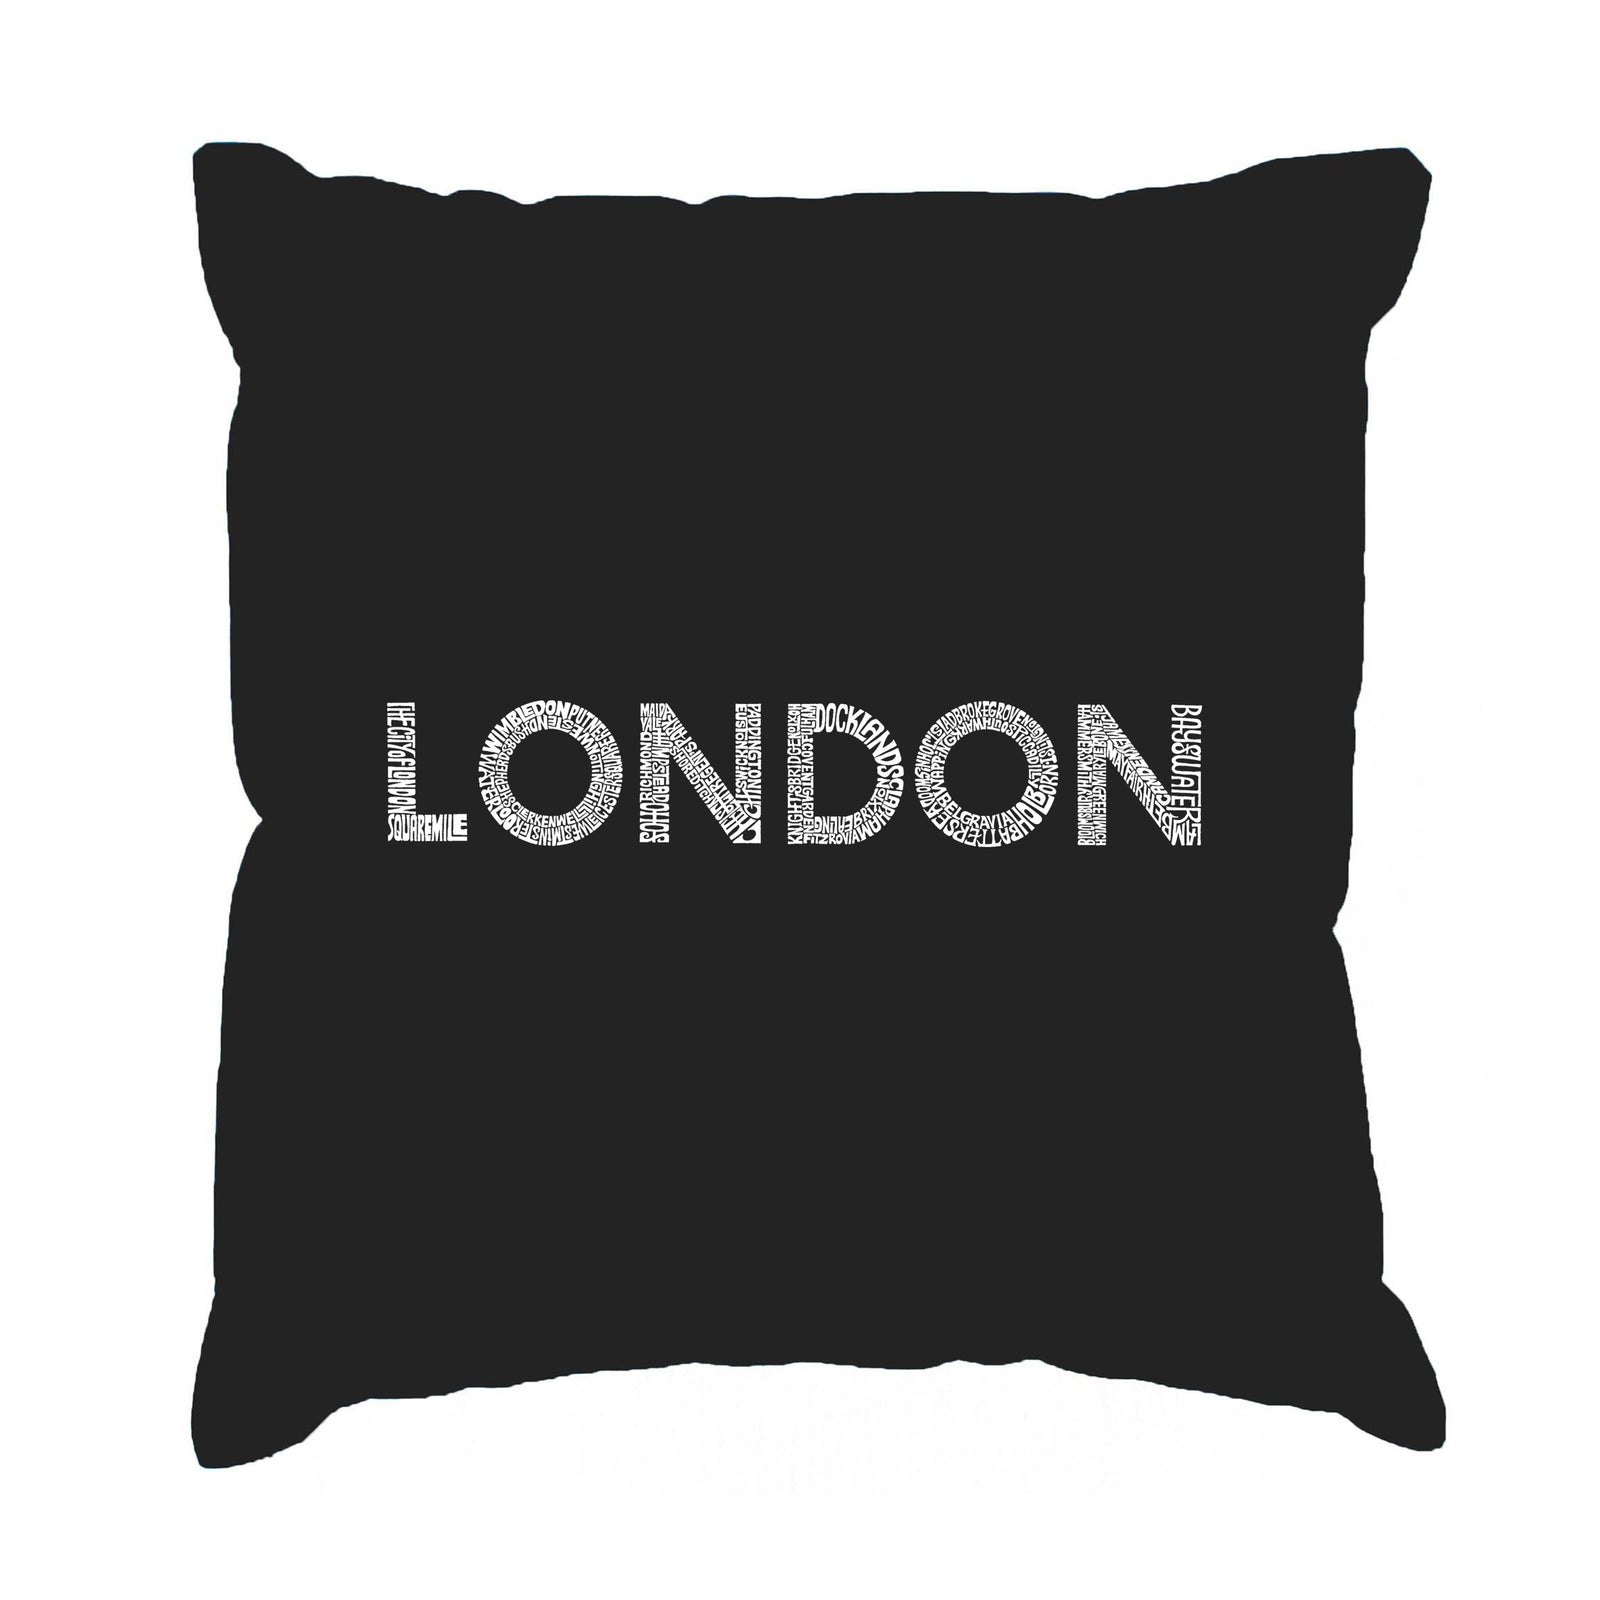 Throw Pillow Cover - LONDON NEIGHBORHOODS